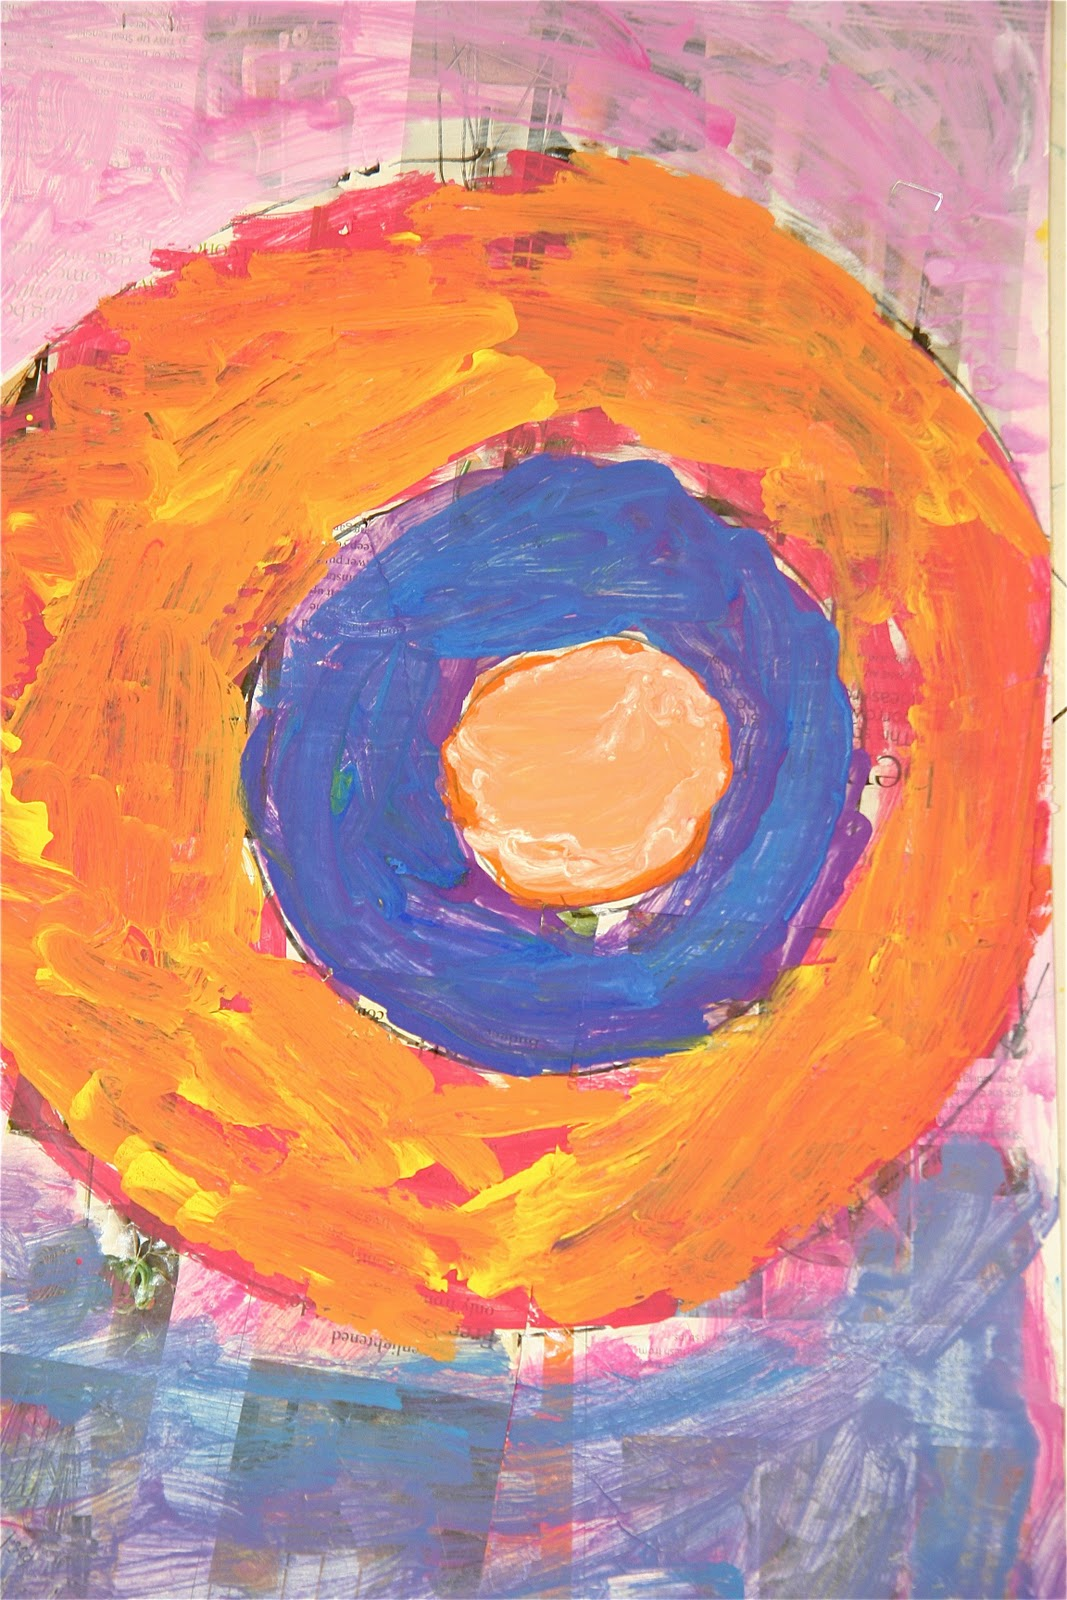 Jasper Johns Most Important Art  The Art Story